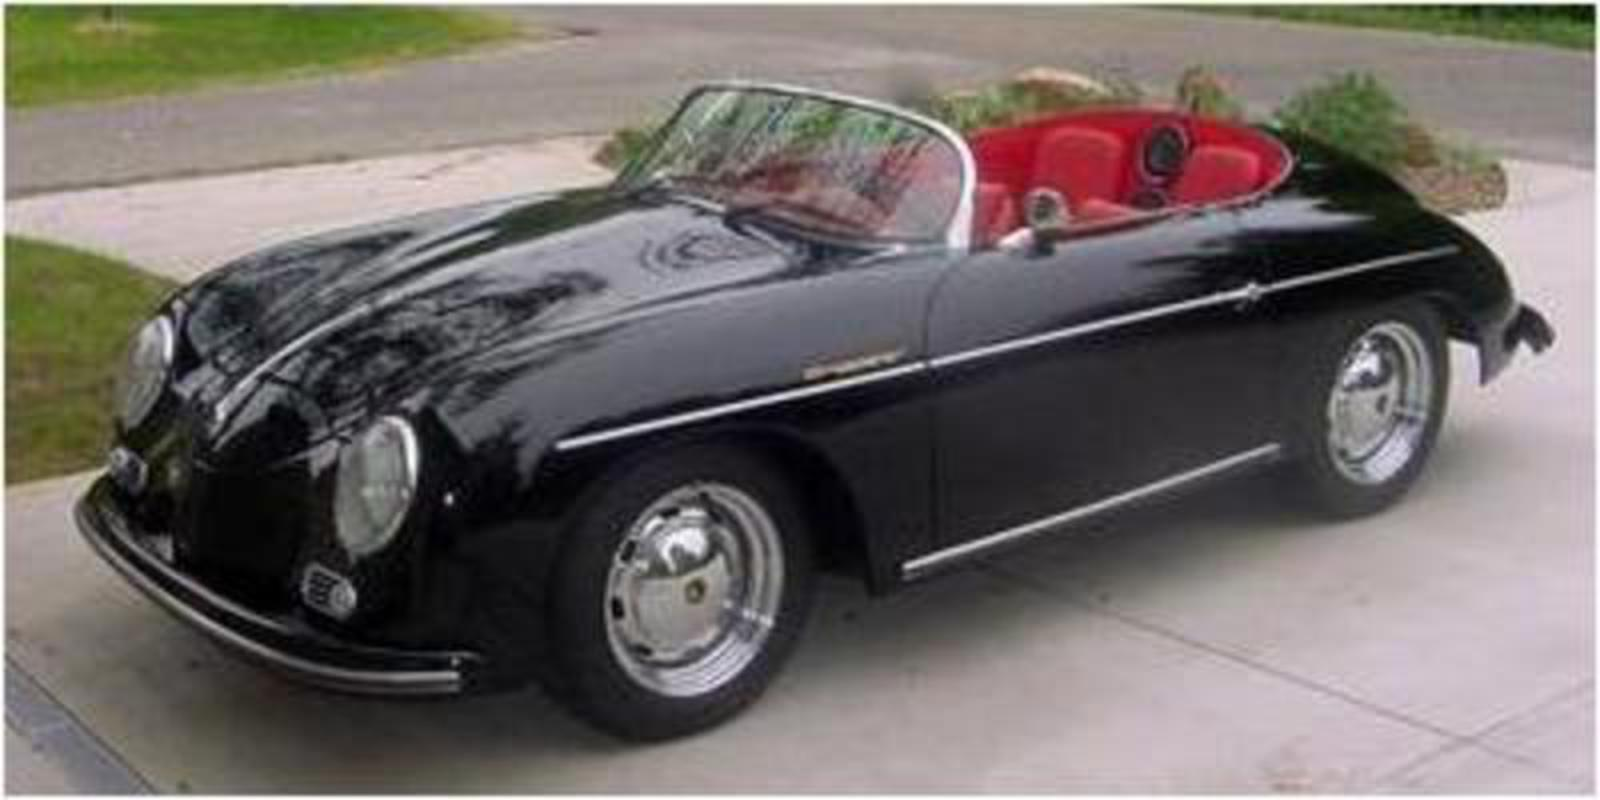 for Superformance and JPS replicars Beck Porsche 356 Speedster Replica